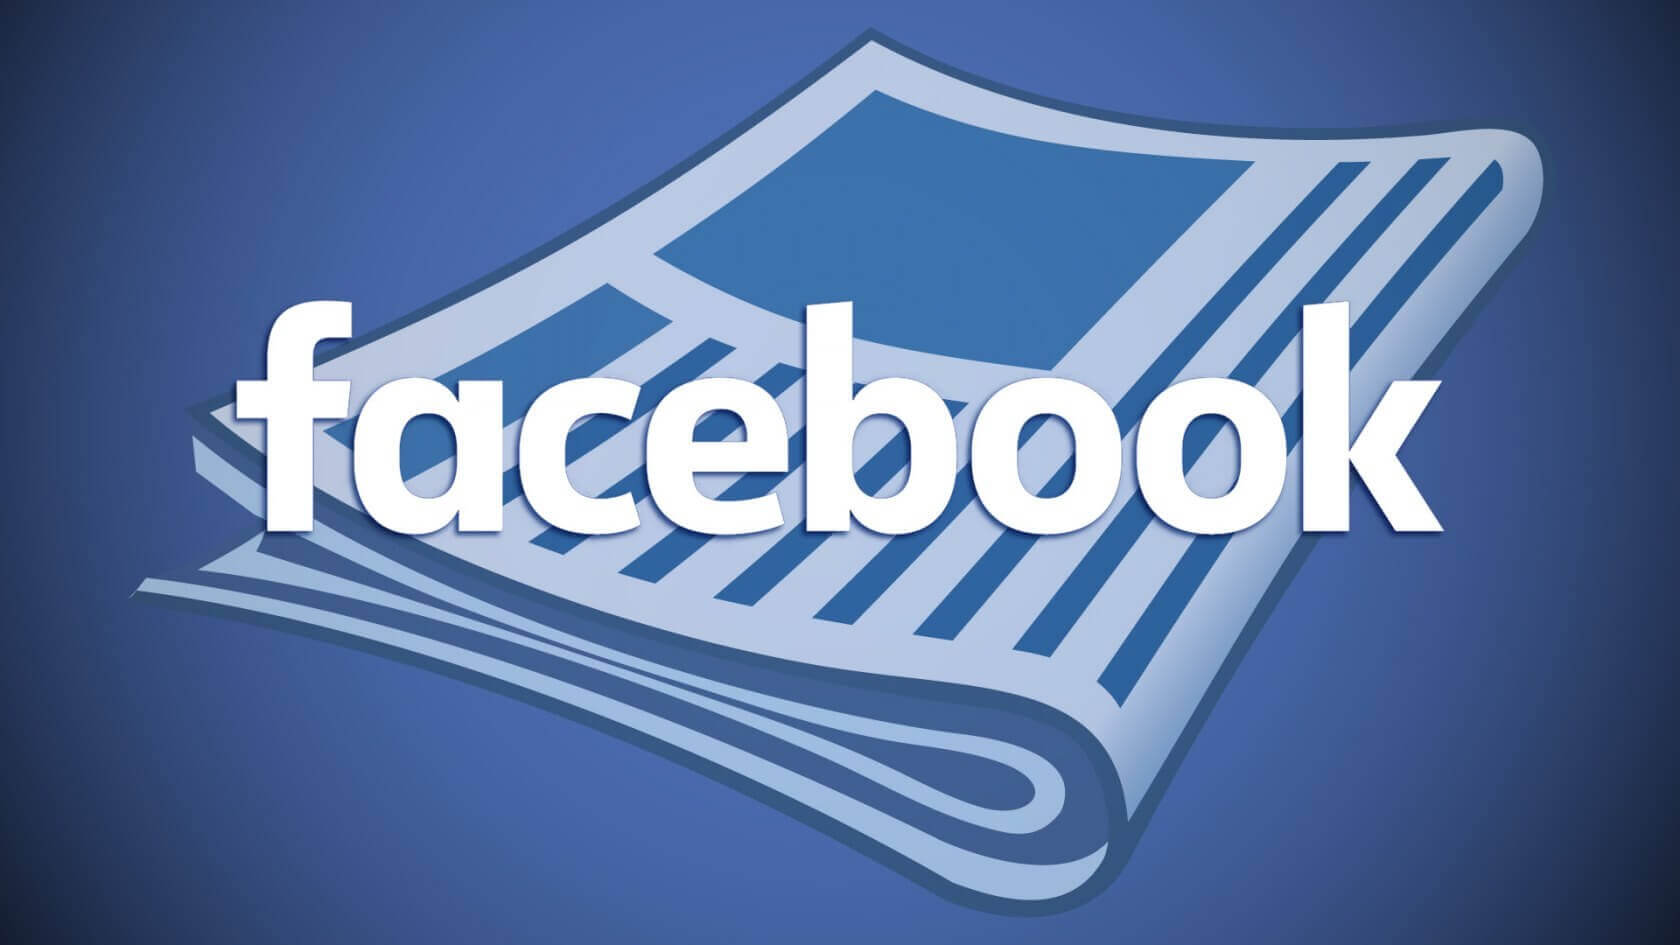 Australia to benefit from Facebook's $300m journalism boost